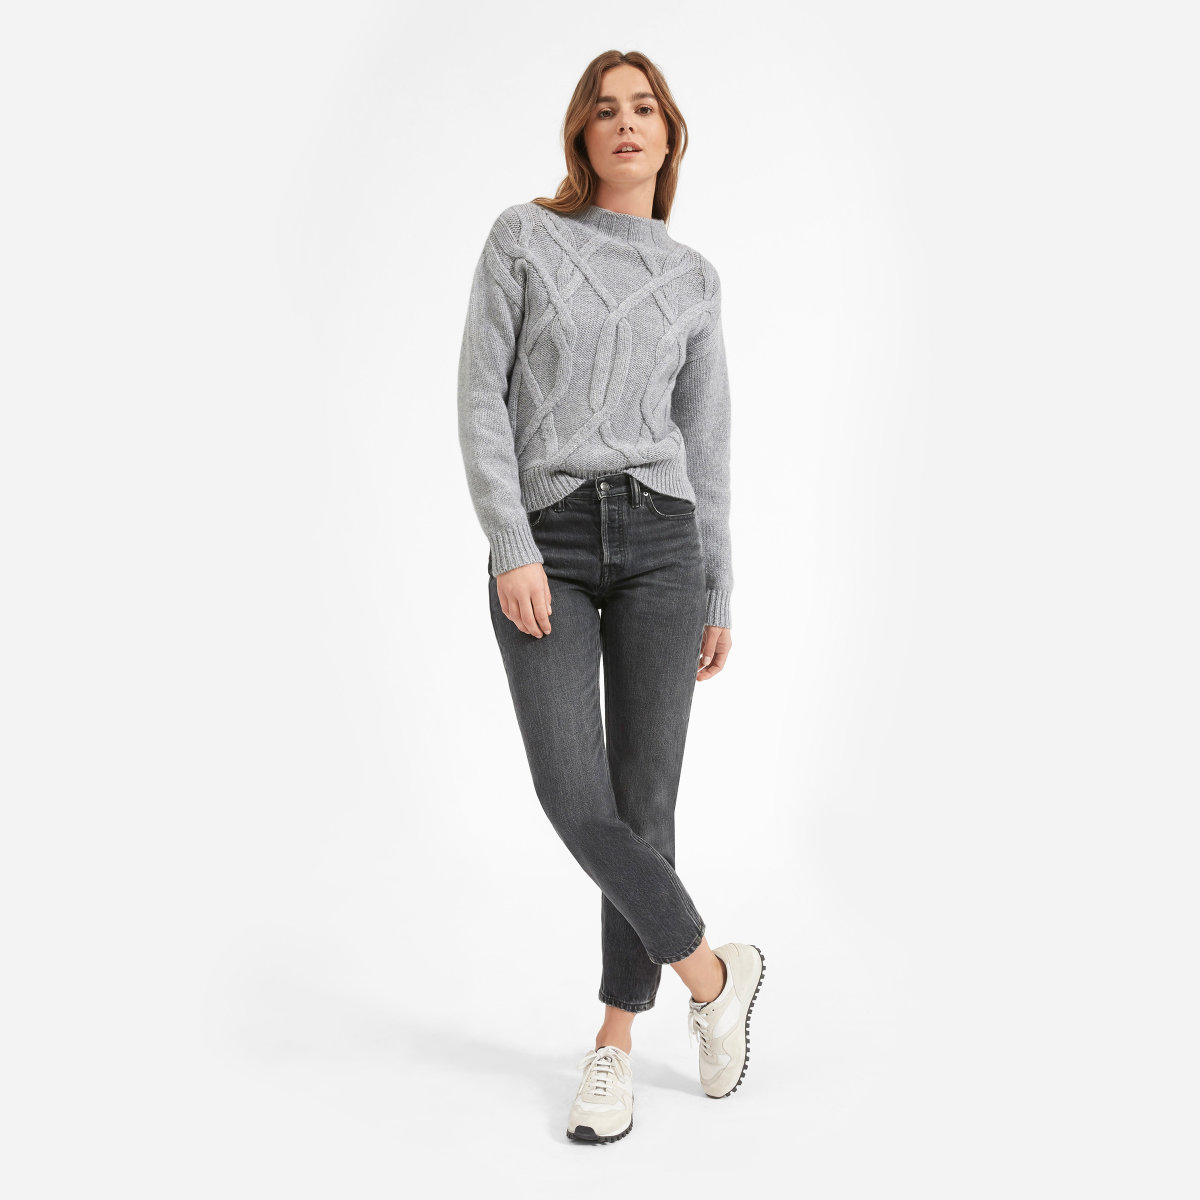 The Cable Mockneck